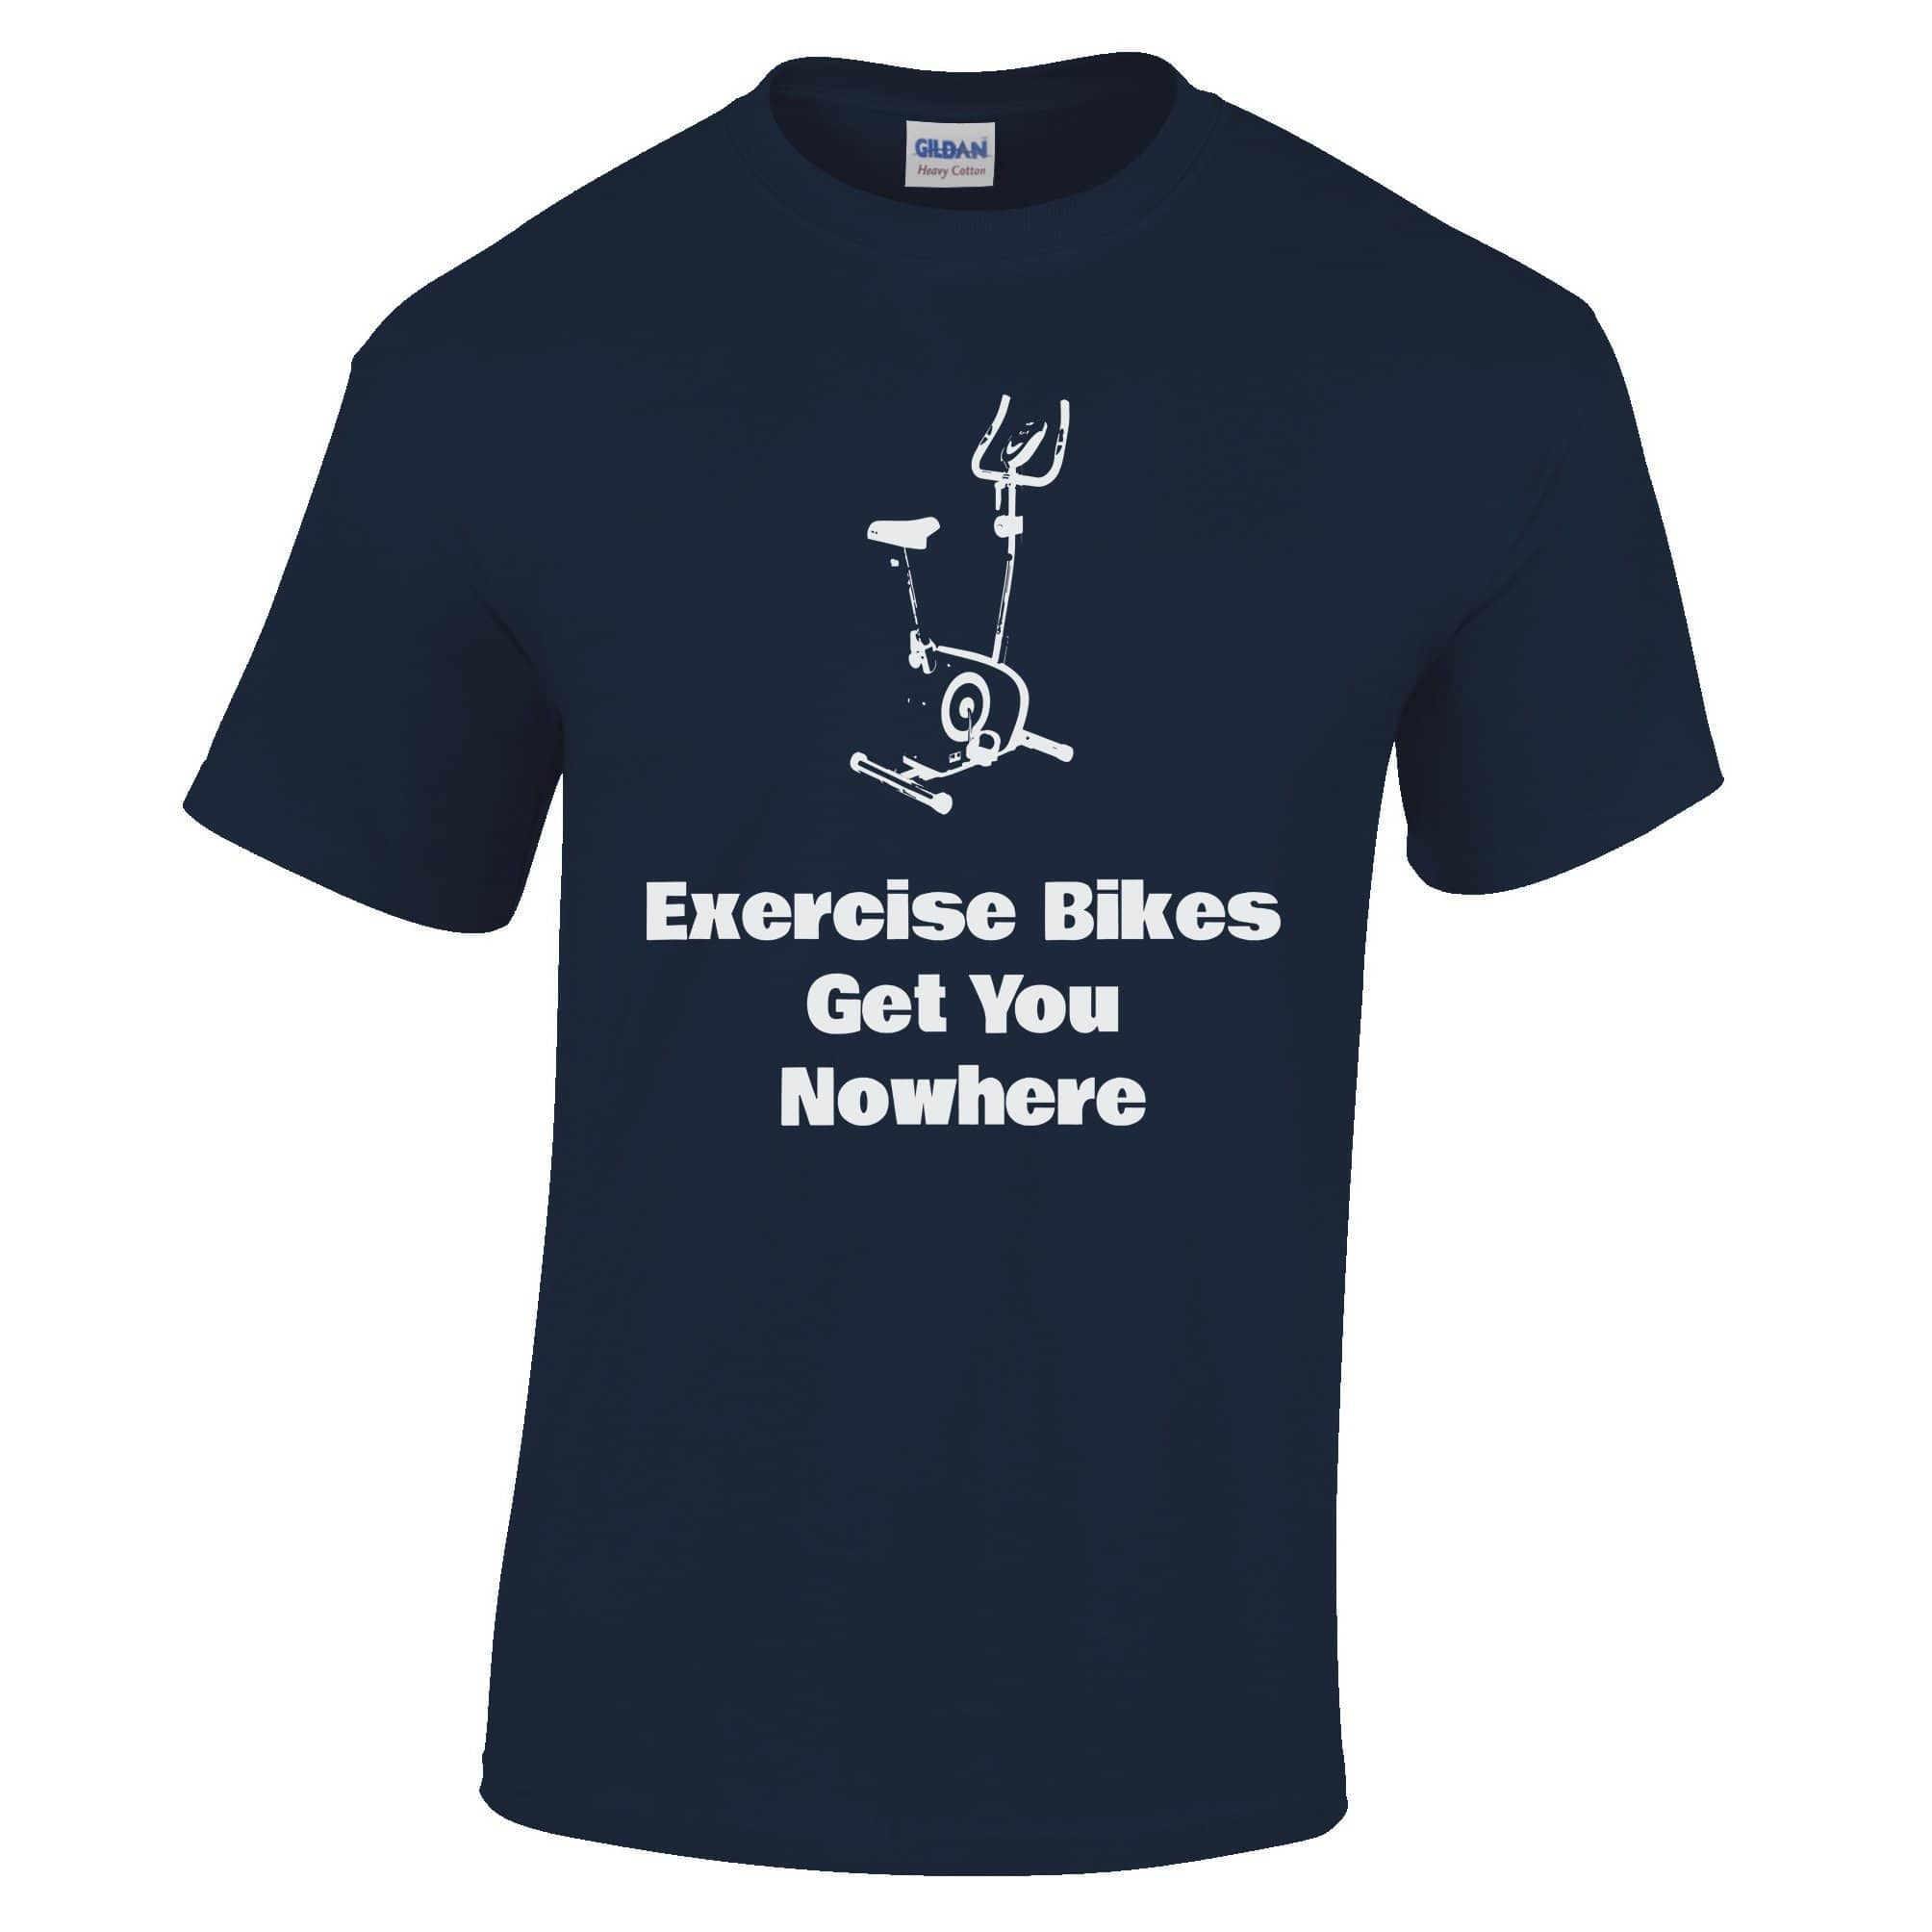 Joke Gym T Shirt Exercise Bikes Get You Nowhere